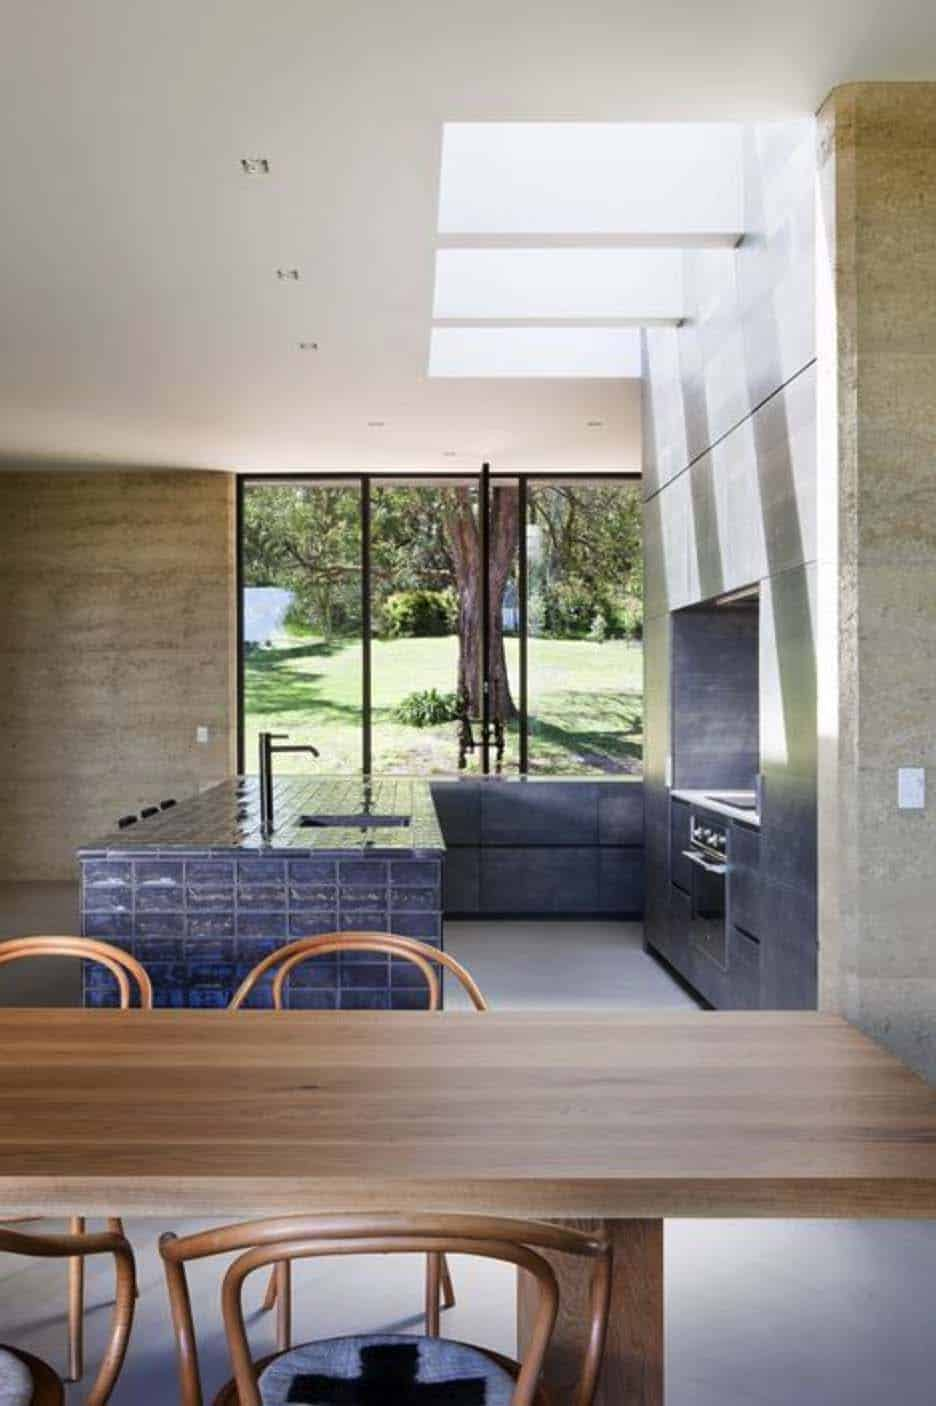 Rammed Earth House-Robson Rak Architects-10-1 Kindesign